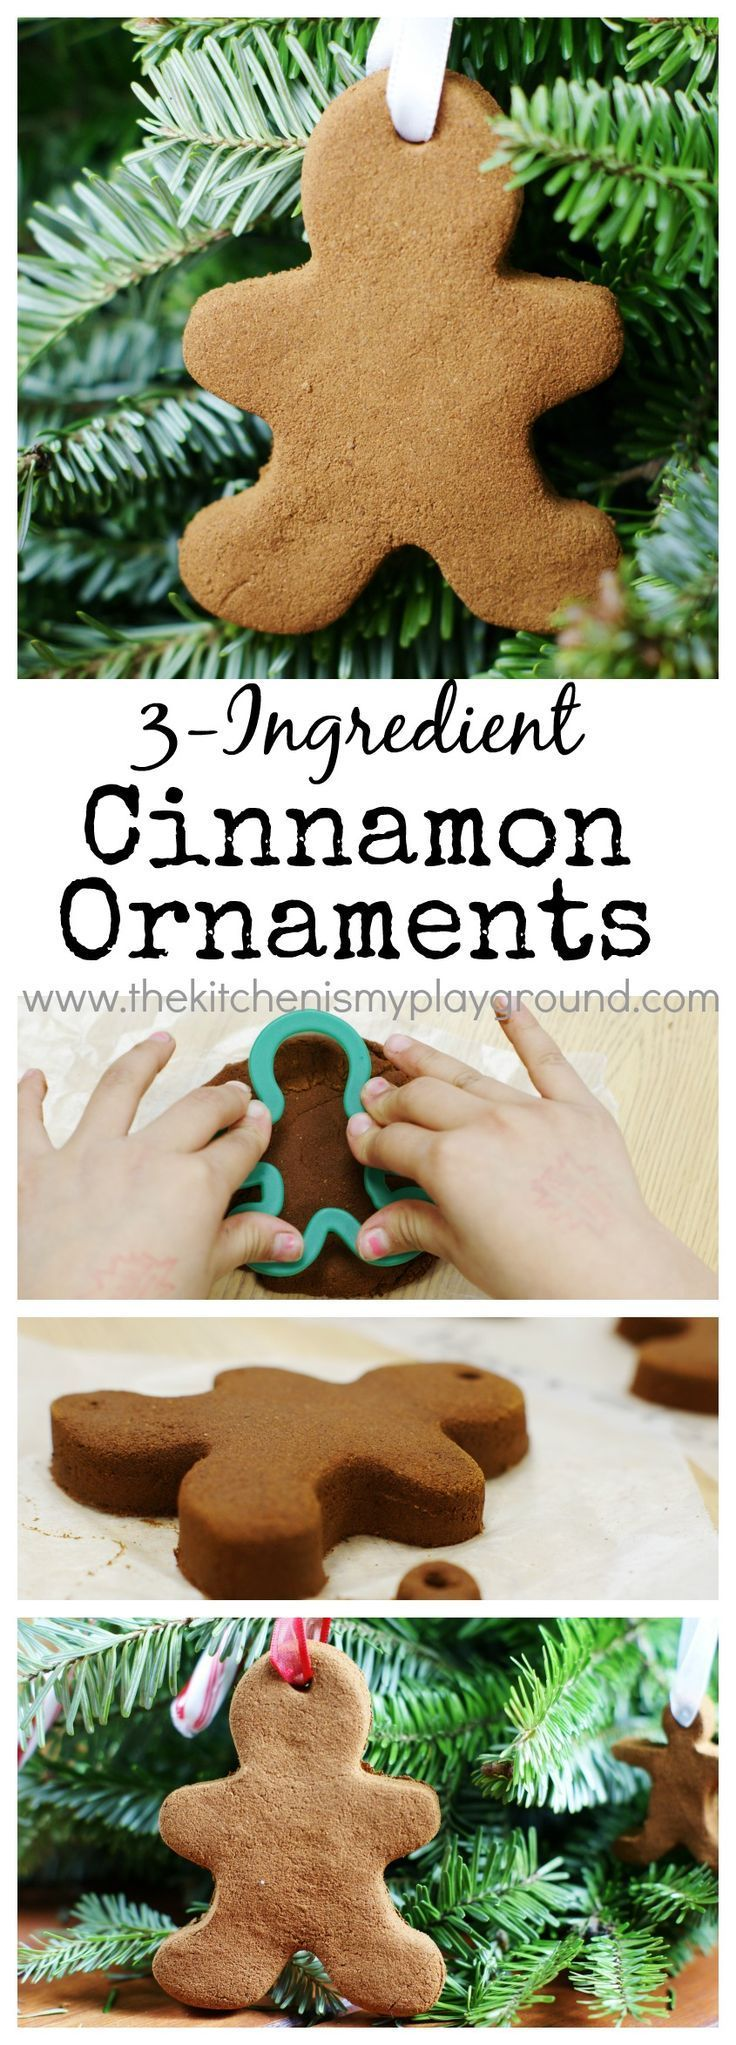 Easy 3-ingredient Cinnamon Ornaments ~ the perfect kid-friendly homemade ornament for gift giving or decorating at home. http://www.thekitchenismyplayground.com